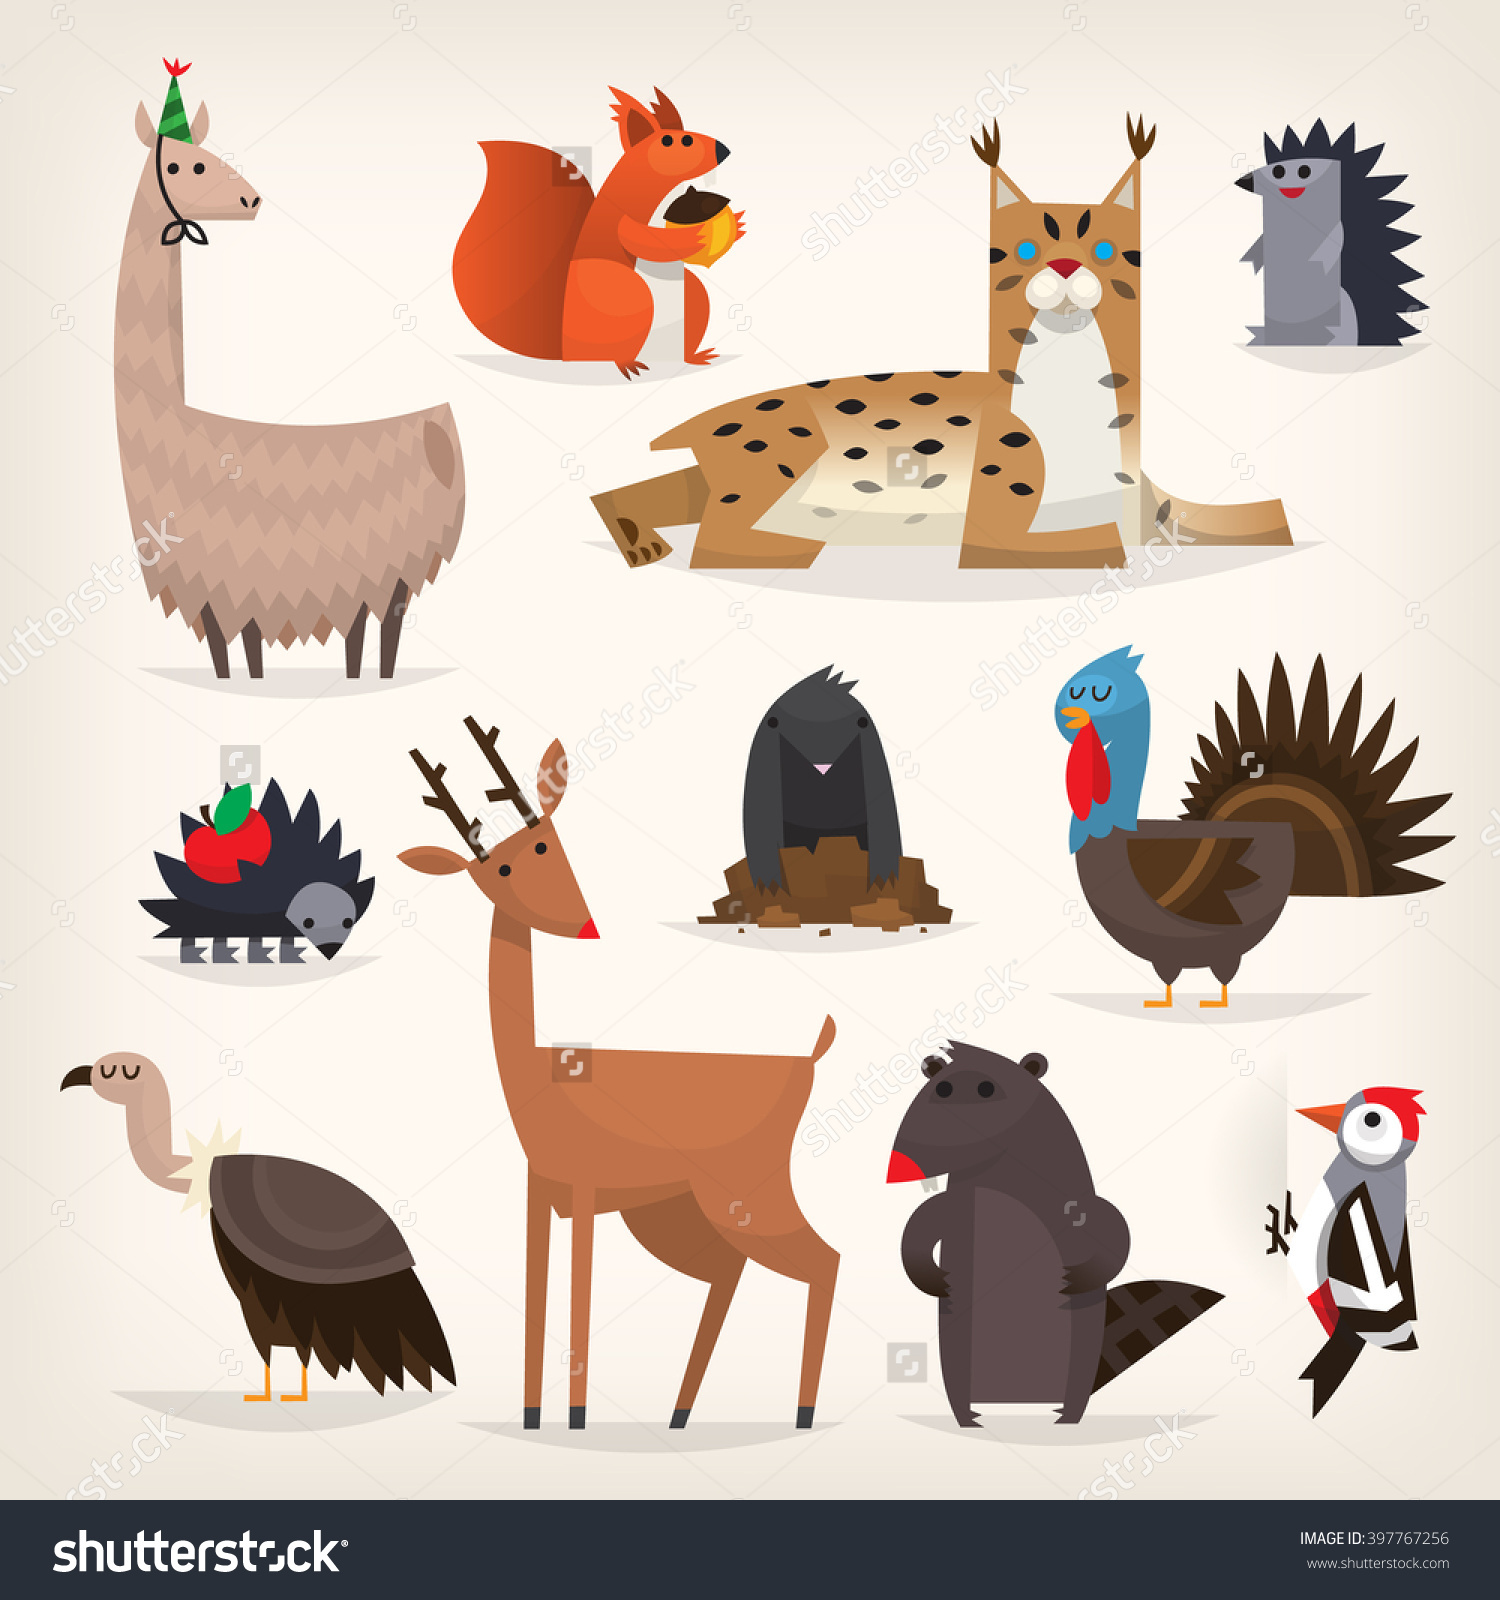 Colorful Cartoon Highland Midland Forest Animals Stock Vector.